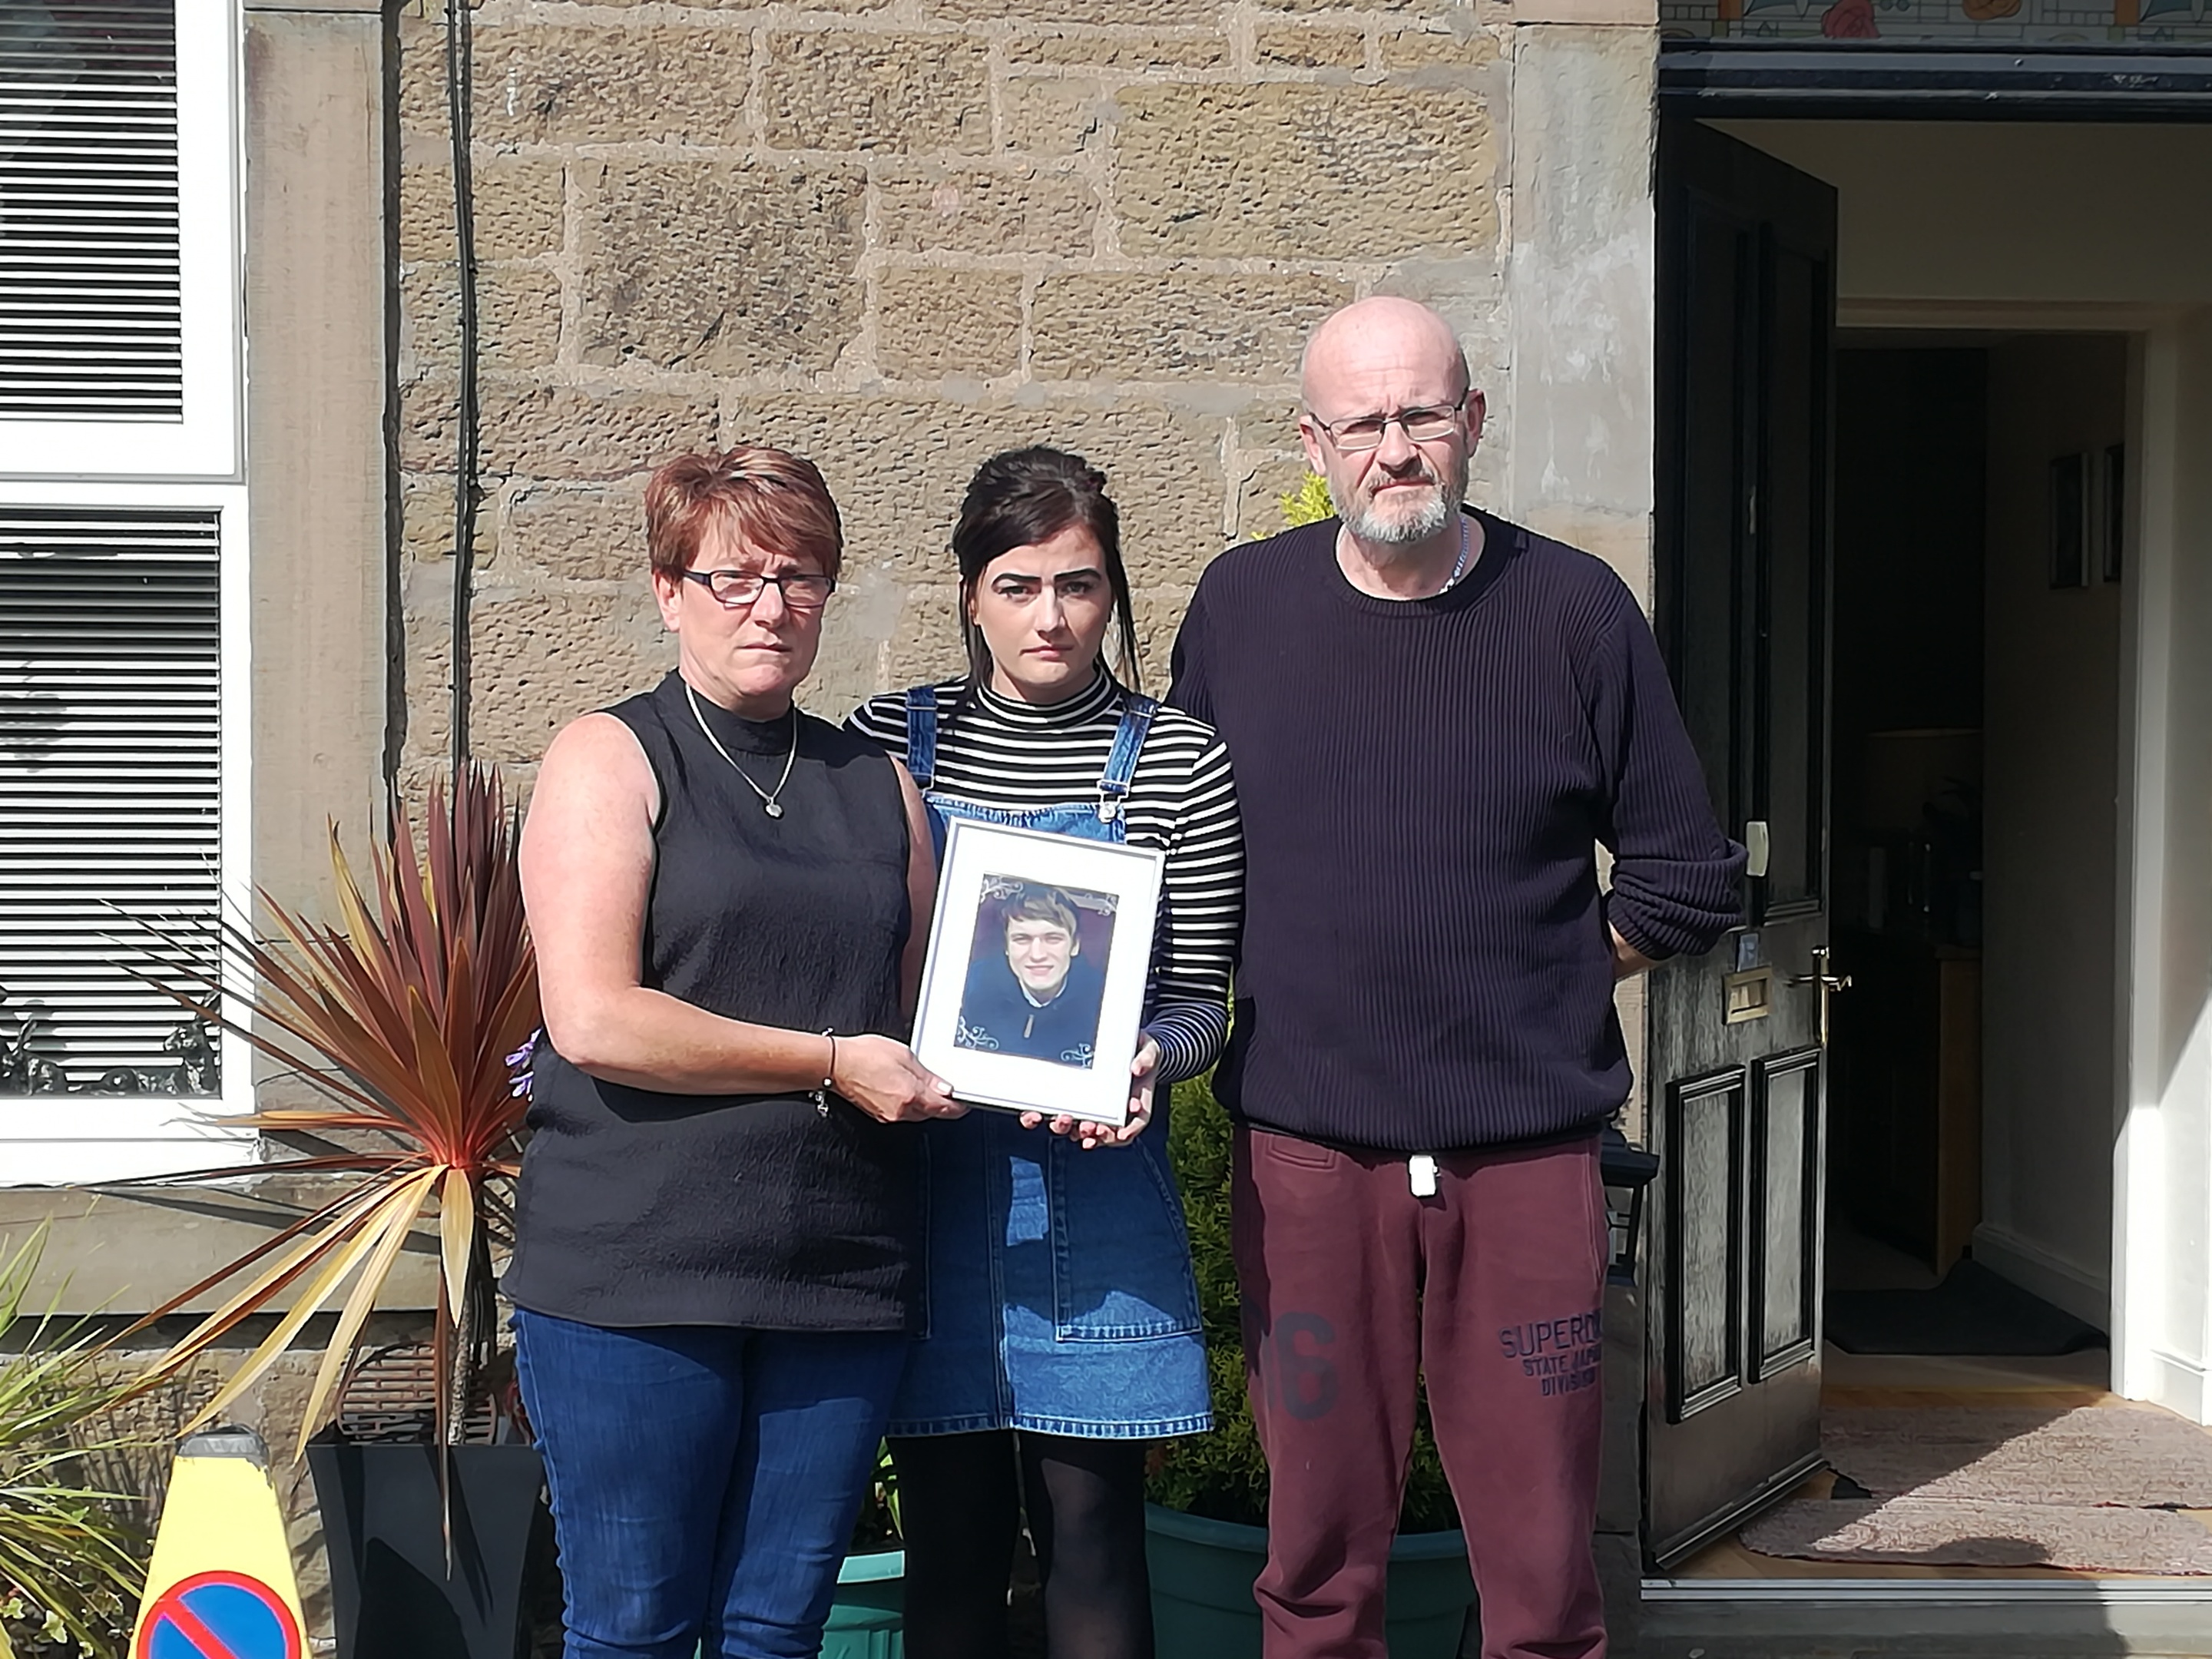 The Welsh family hope their efforts can lead to enhanced mental health provision.